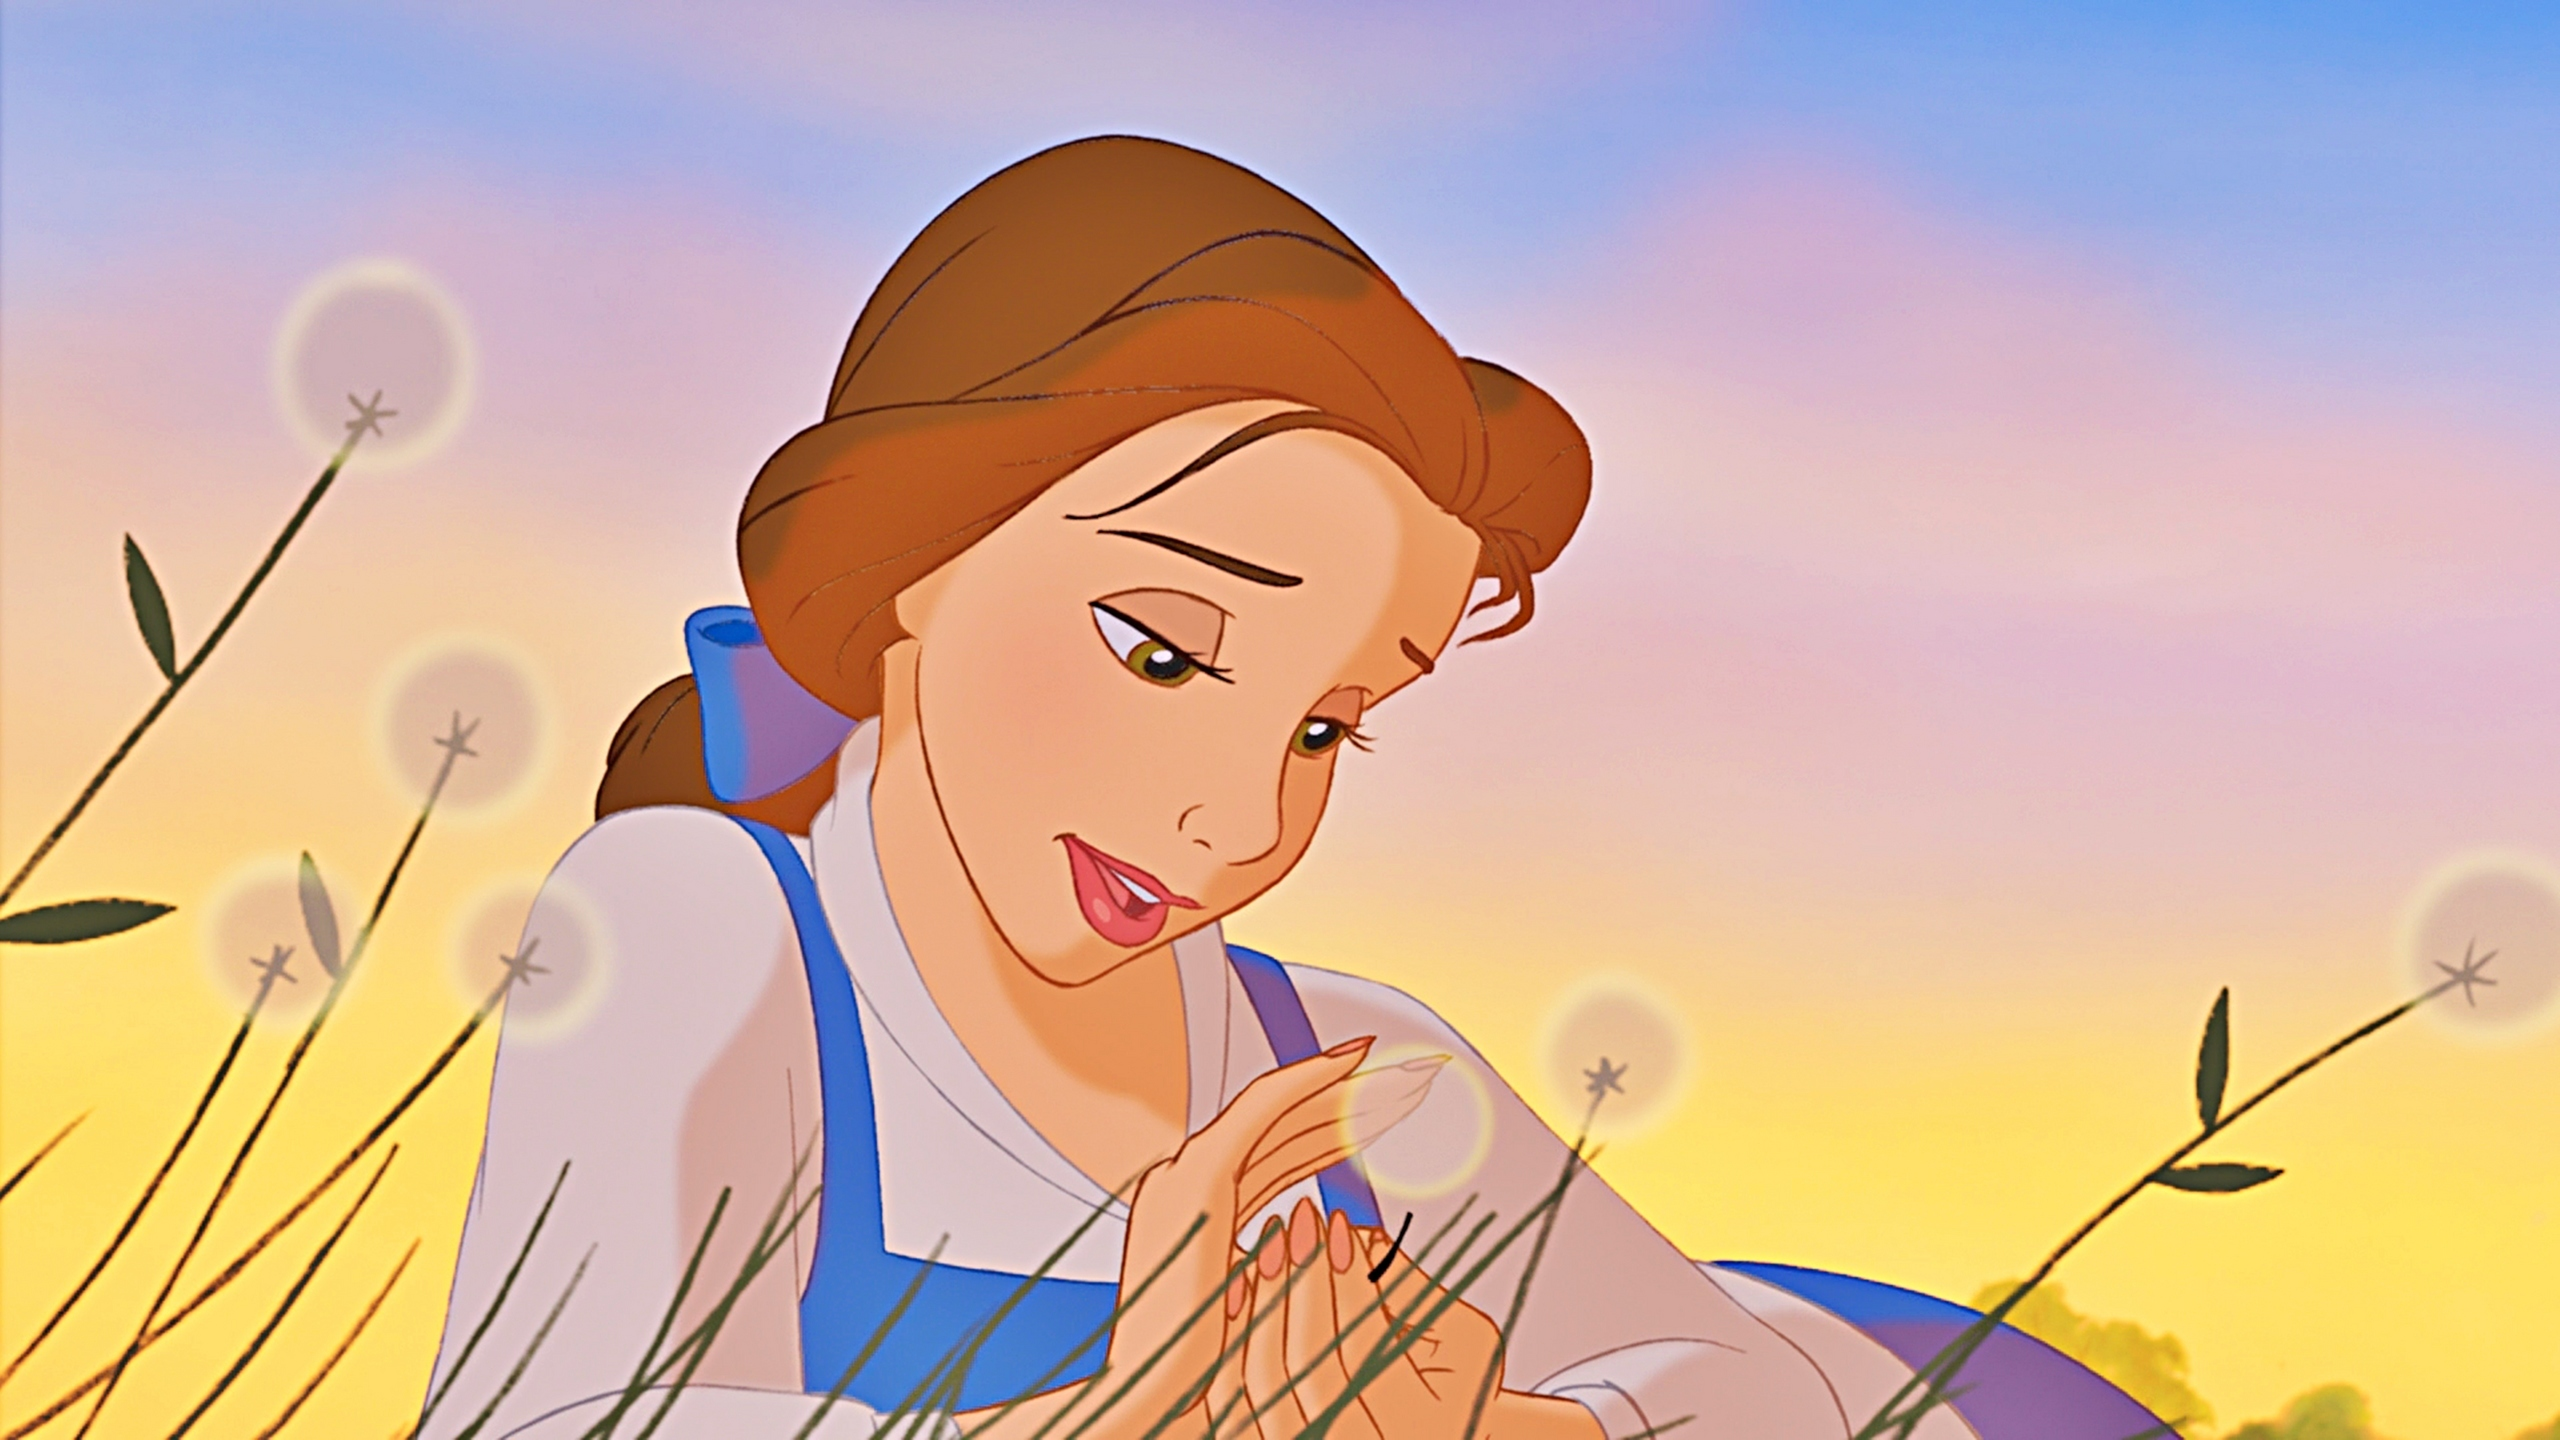 Hair color not hair style poll results disney princess fanpop - Hair Color Not Hair Style Poll Results Disney Princess Fanpop 28